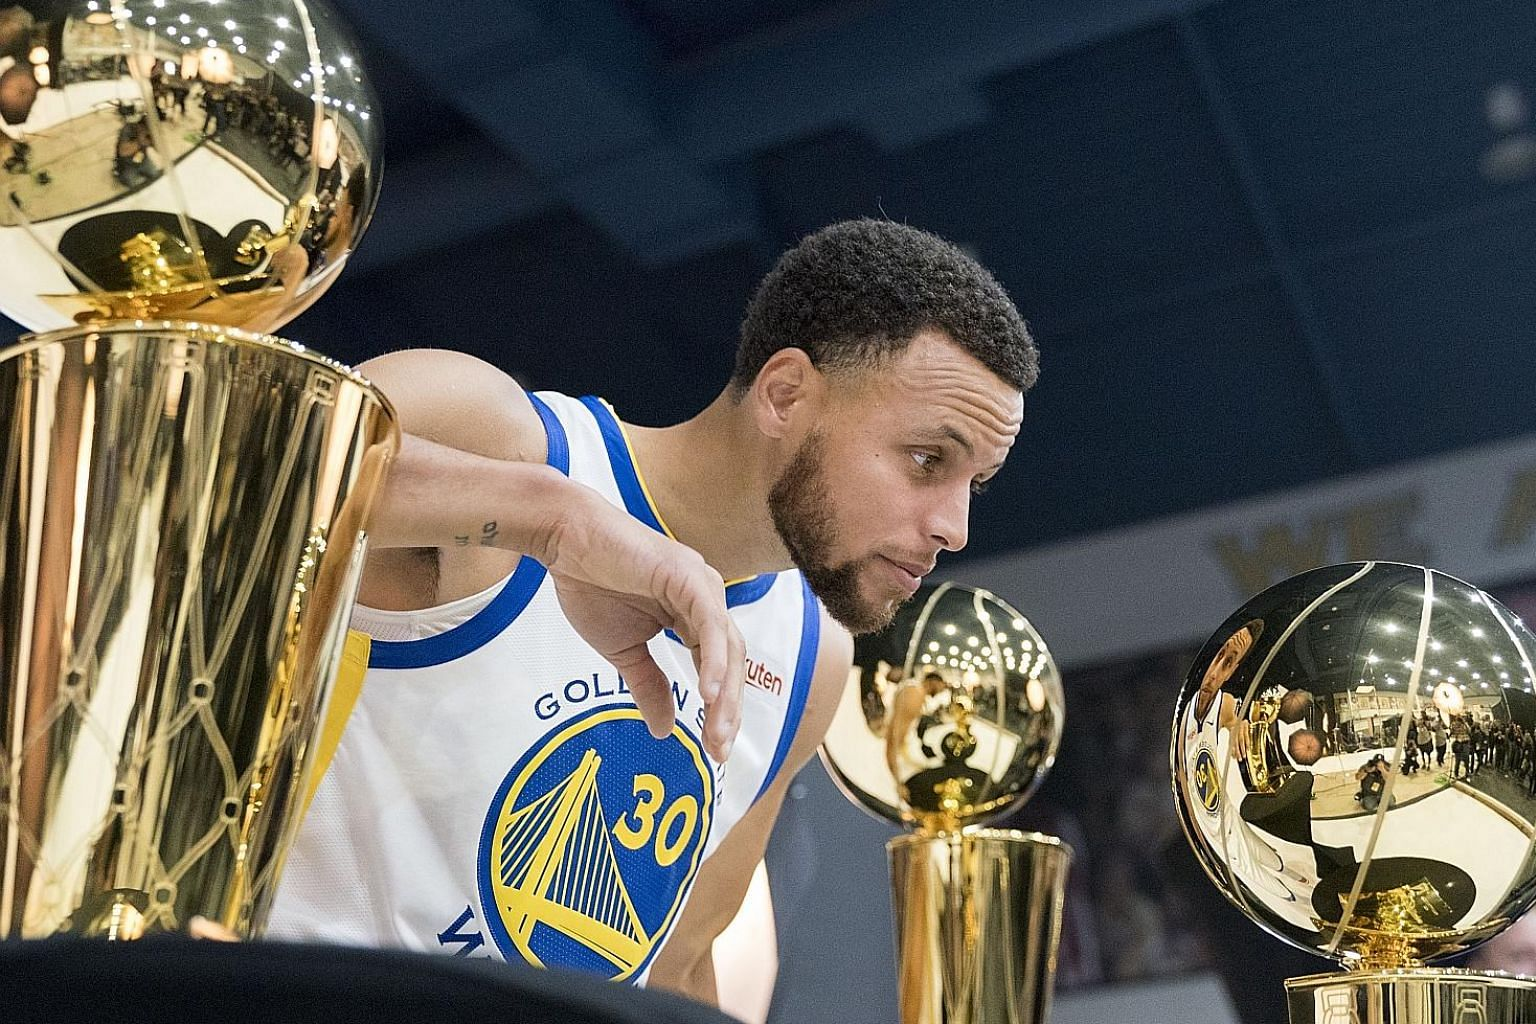 Golden State Warriors' star guard Stephen Curry in a pensive mood as he looks at the team's championship trophies during a media day at Rakuten Performance Centre last month.